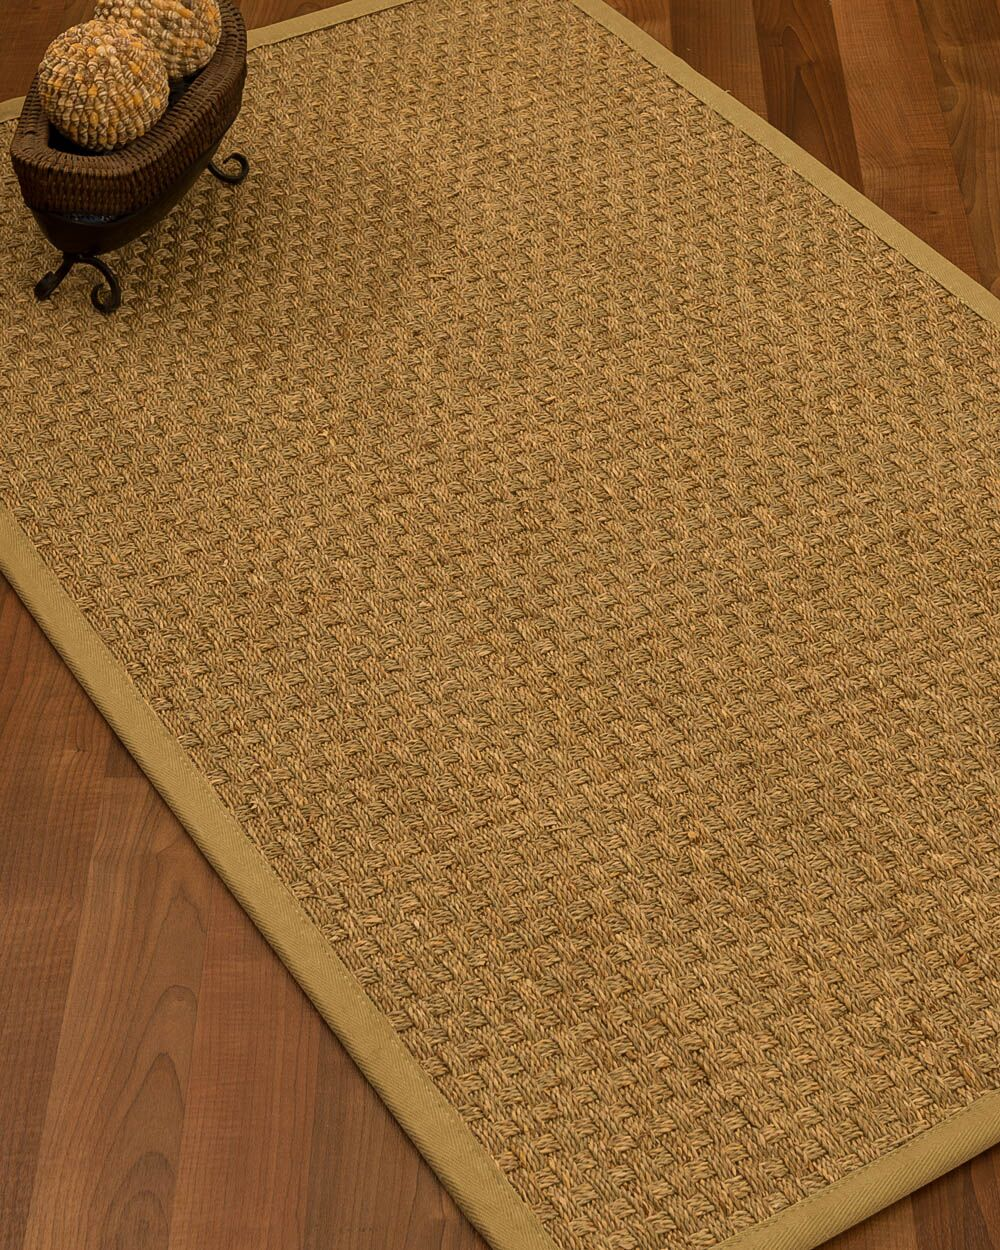 Antiqua Border Hand-Woven Beige/Sage Area Rug Rug Size: Rectangle 8' x 10', Rug Pad Included: Yes